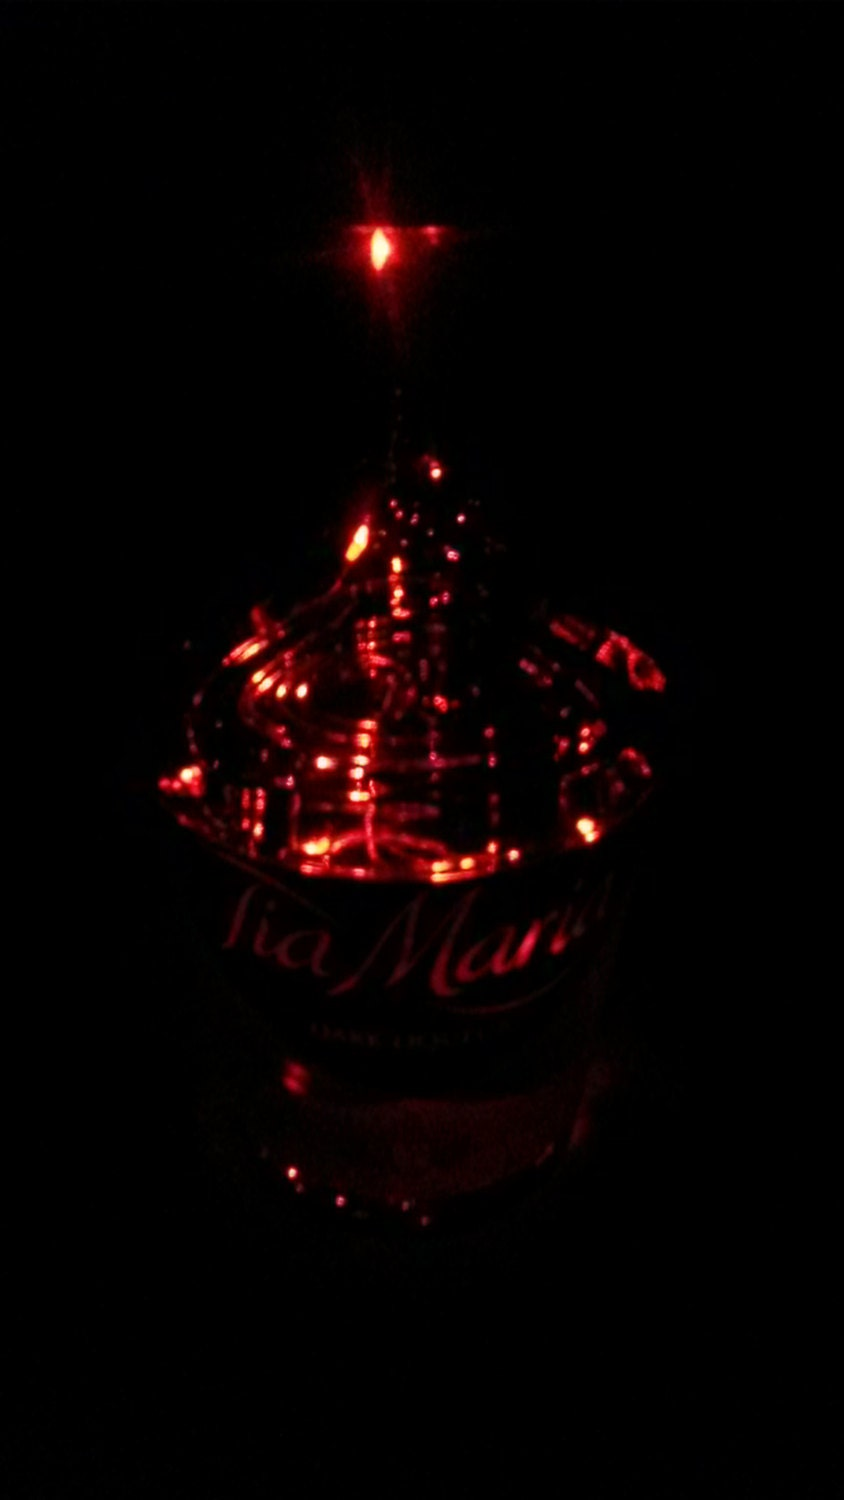 Upcycled Tia Maria Battery Powered Red LED Light Lamp (70cl)